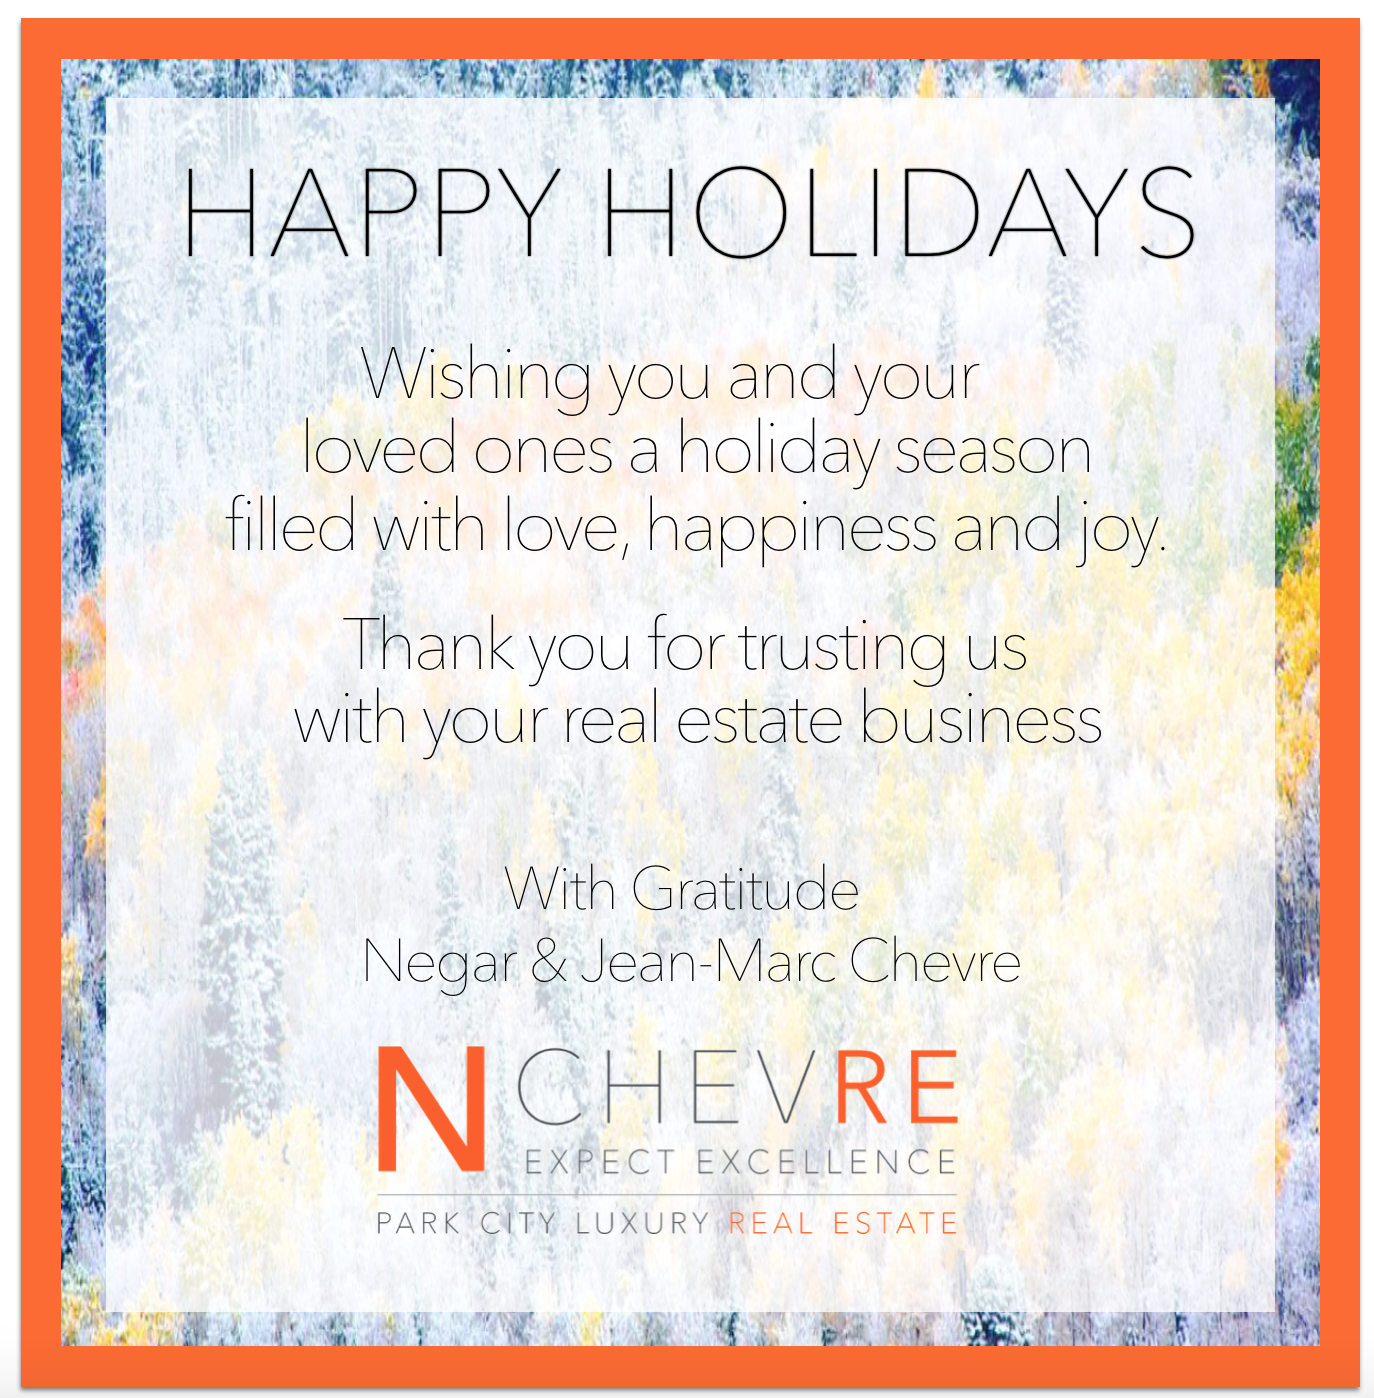 Happy Holidays Nchevre Real Estate